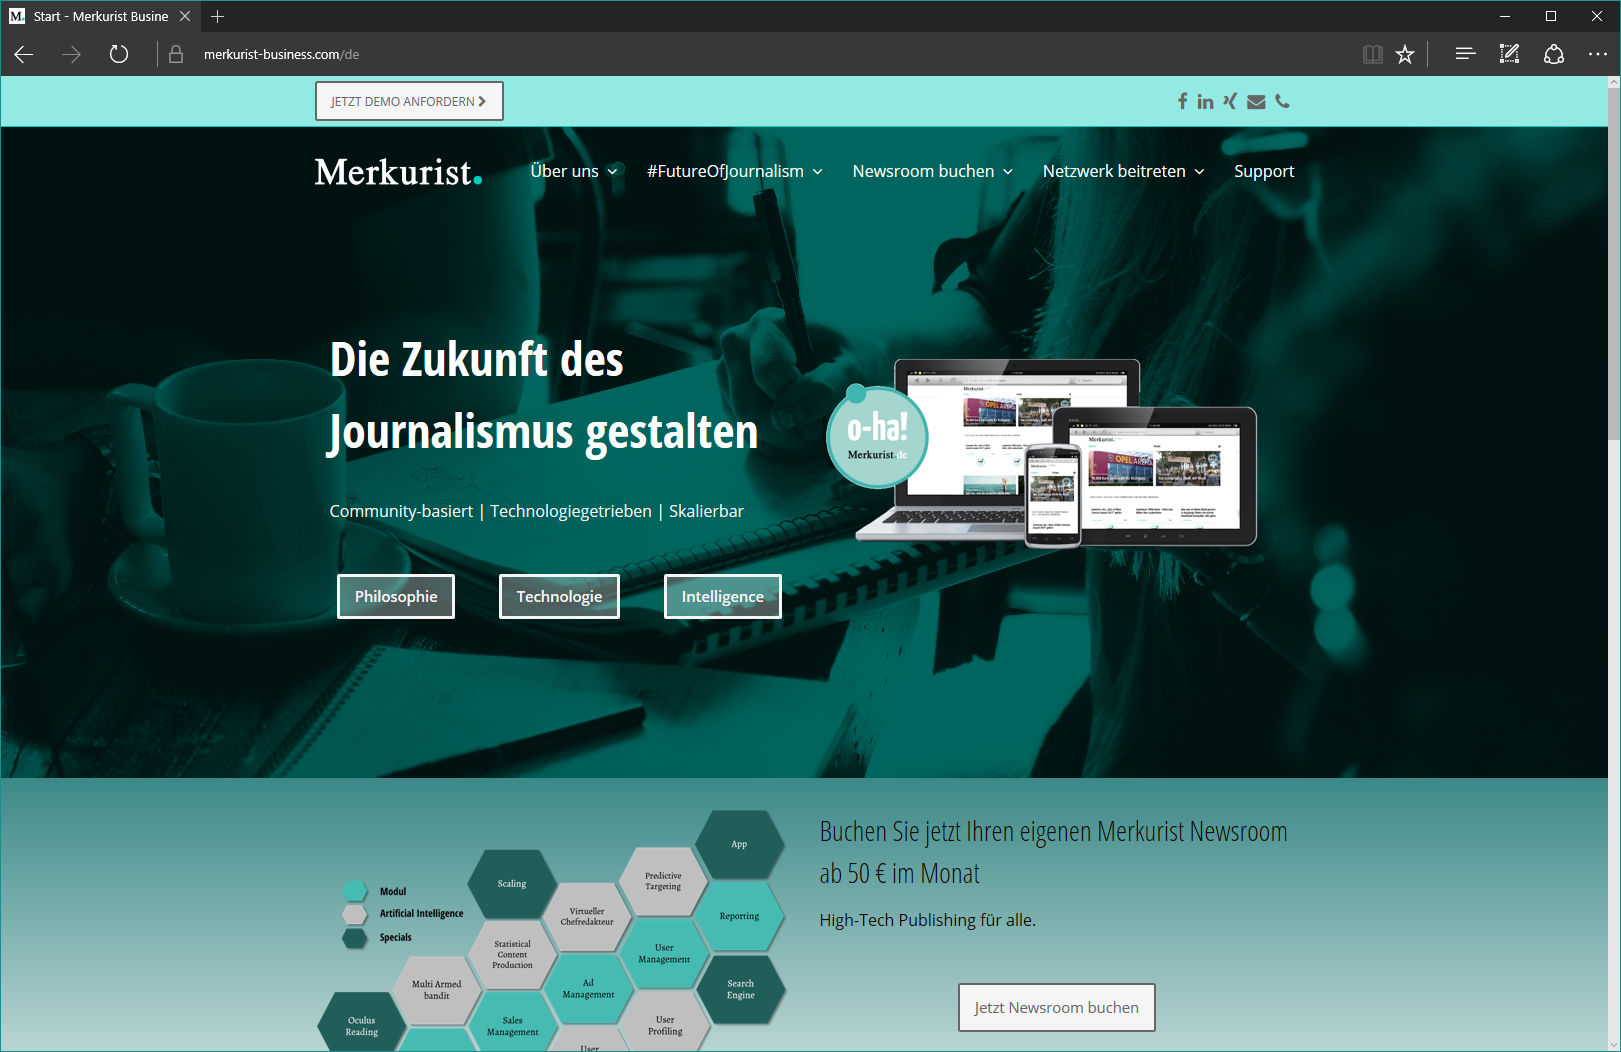 Merkurist Business Webseite online!